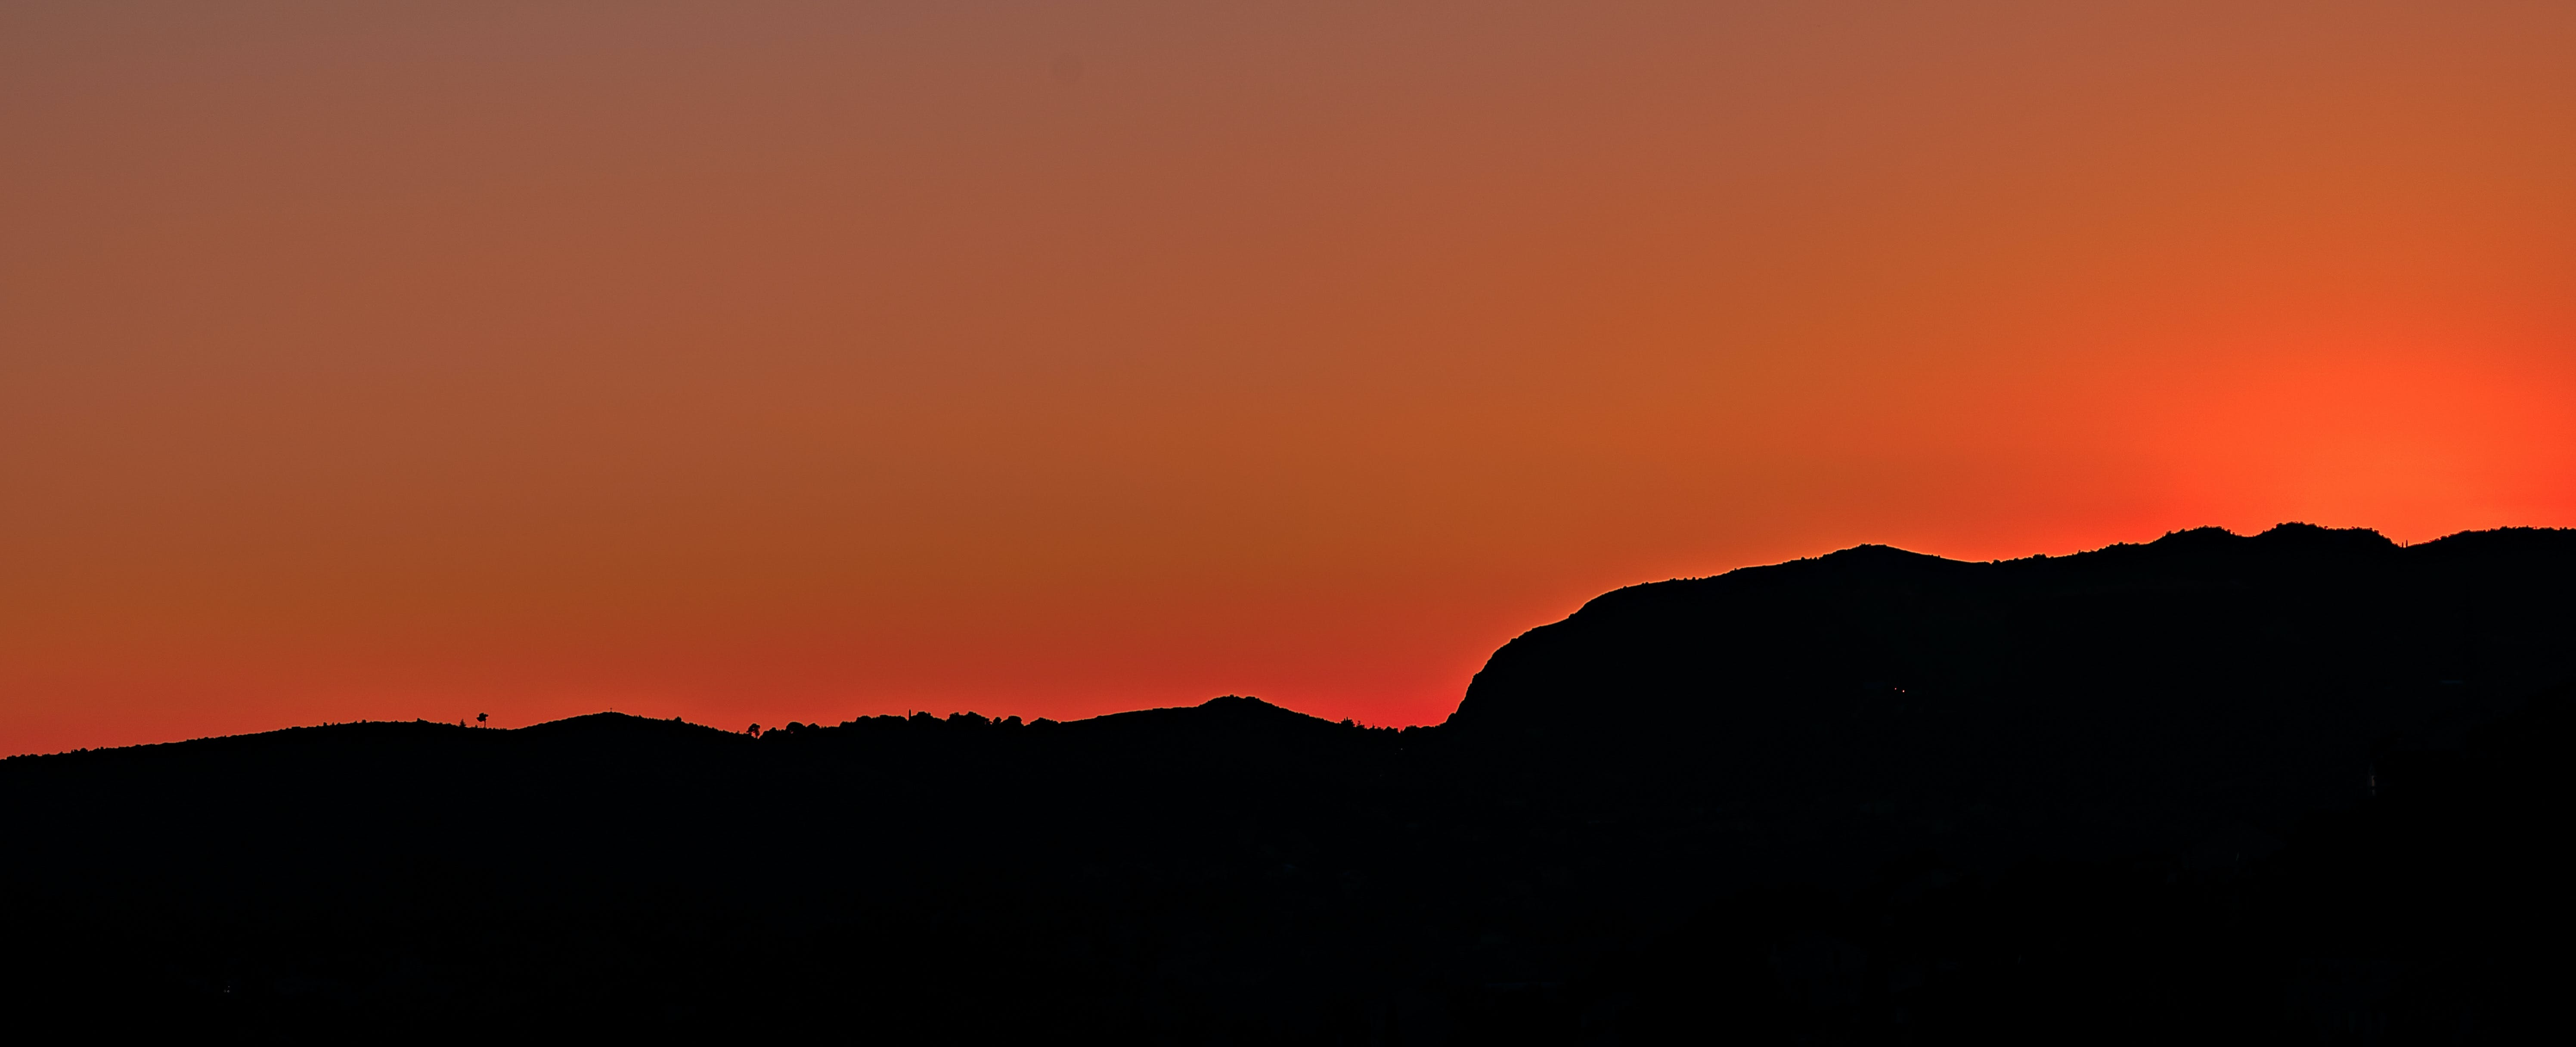 Black Mountain Under Brown Sky during Sunset